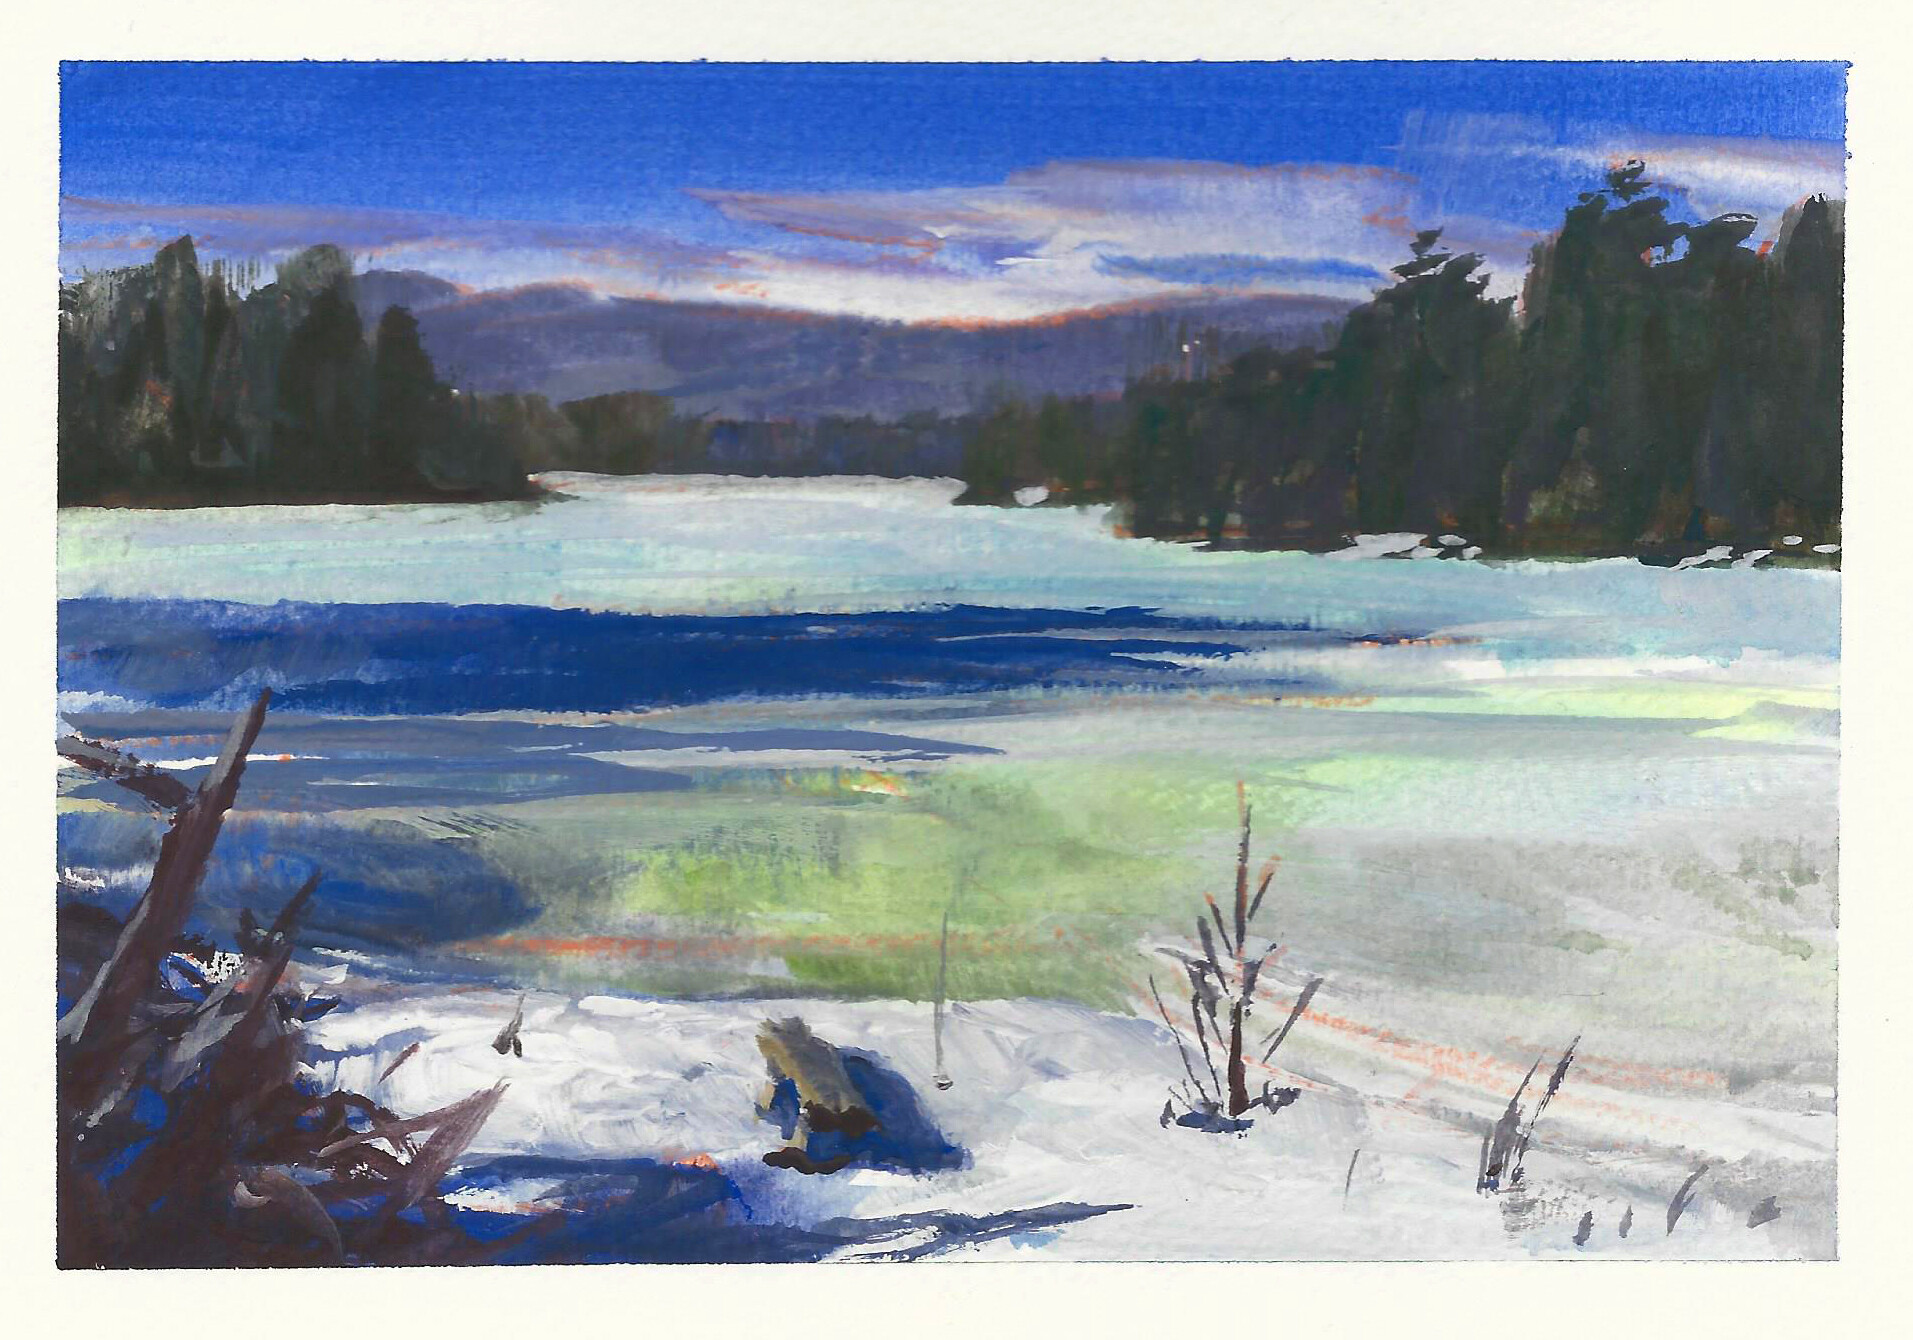 photostudy of the lake where I live in early spring